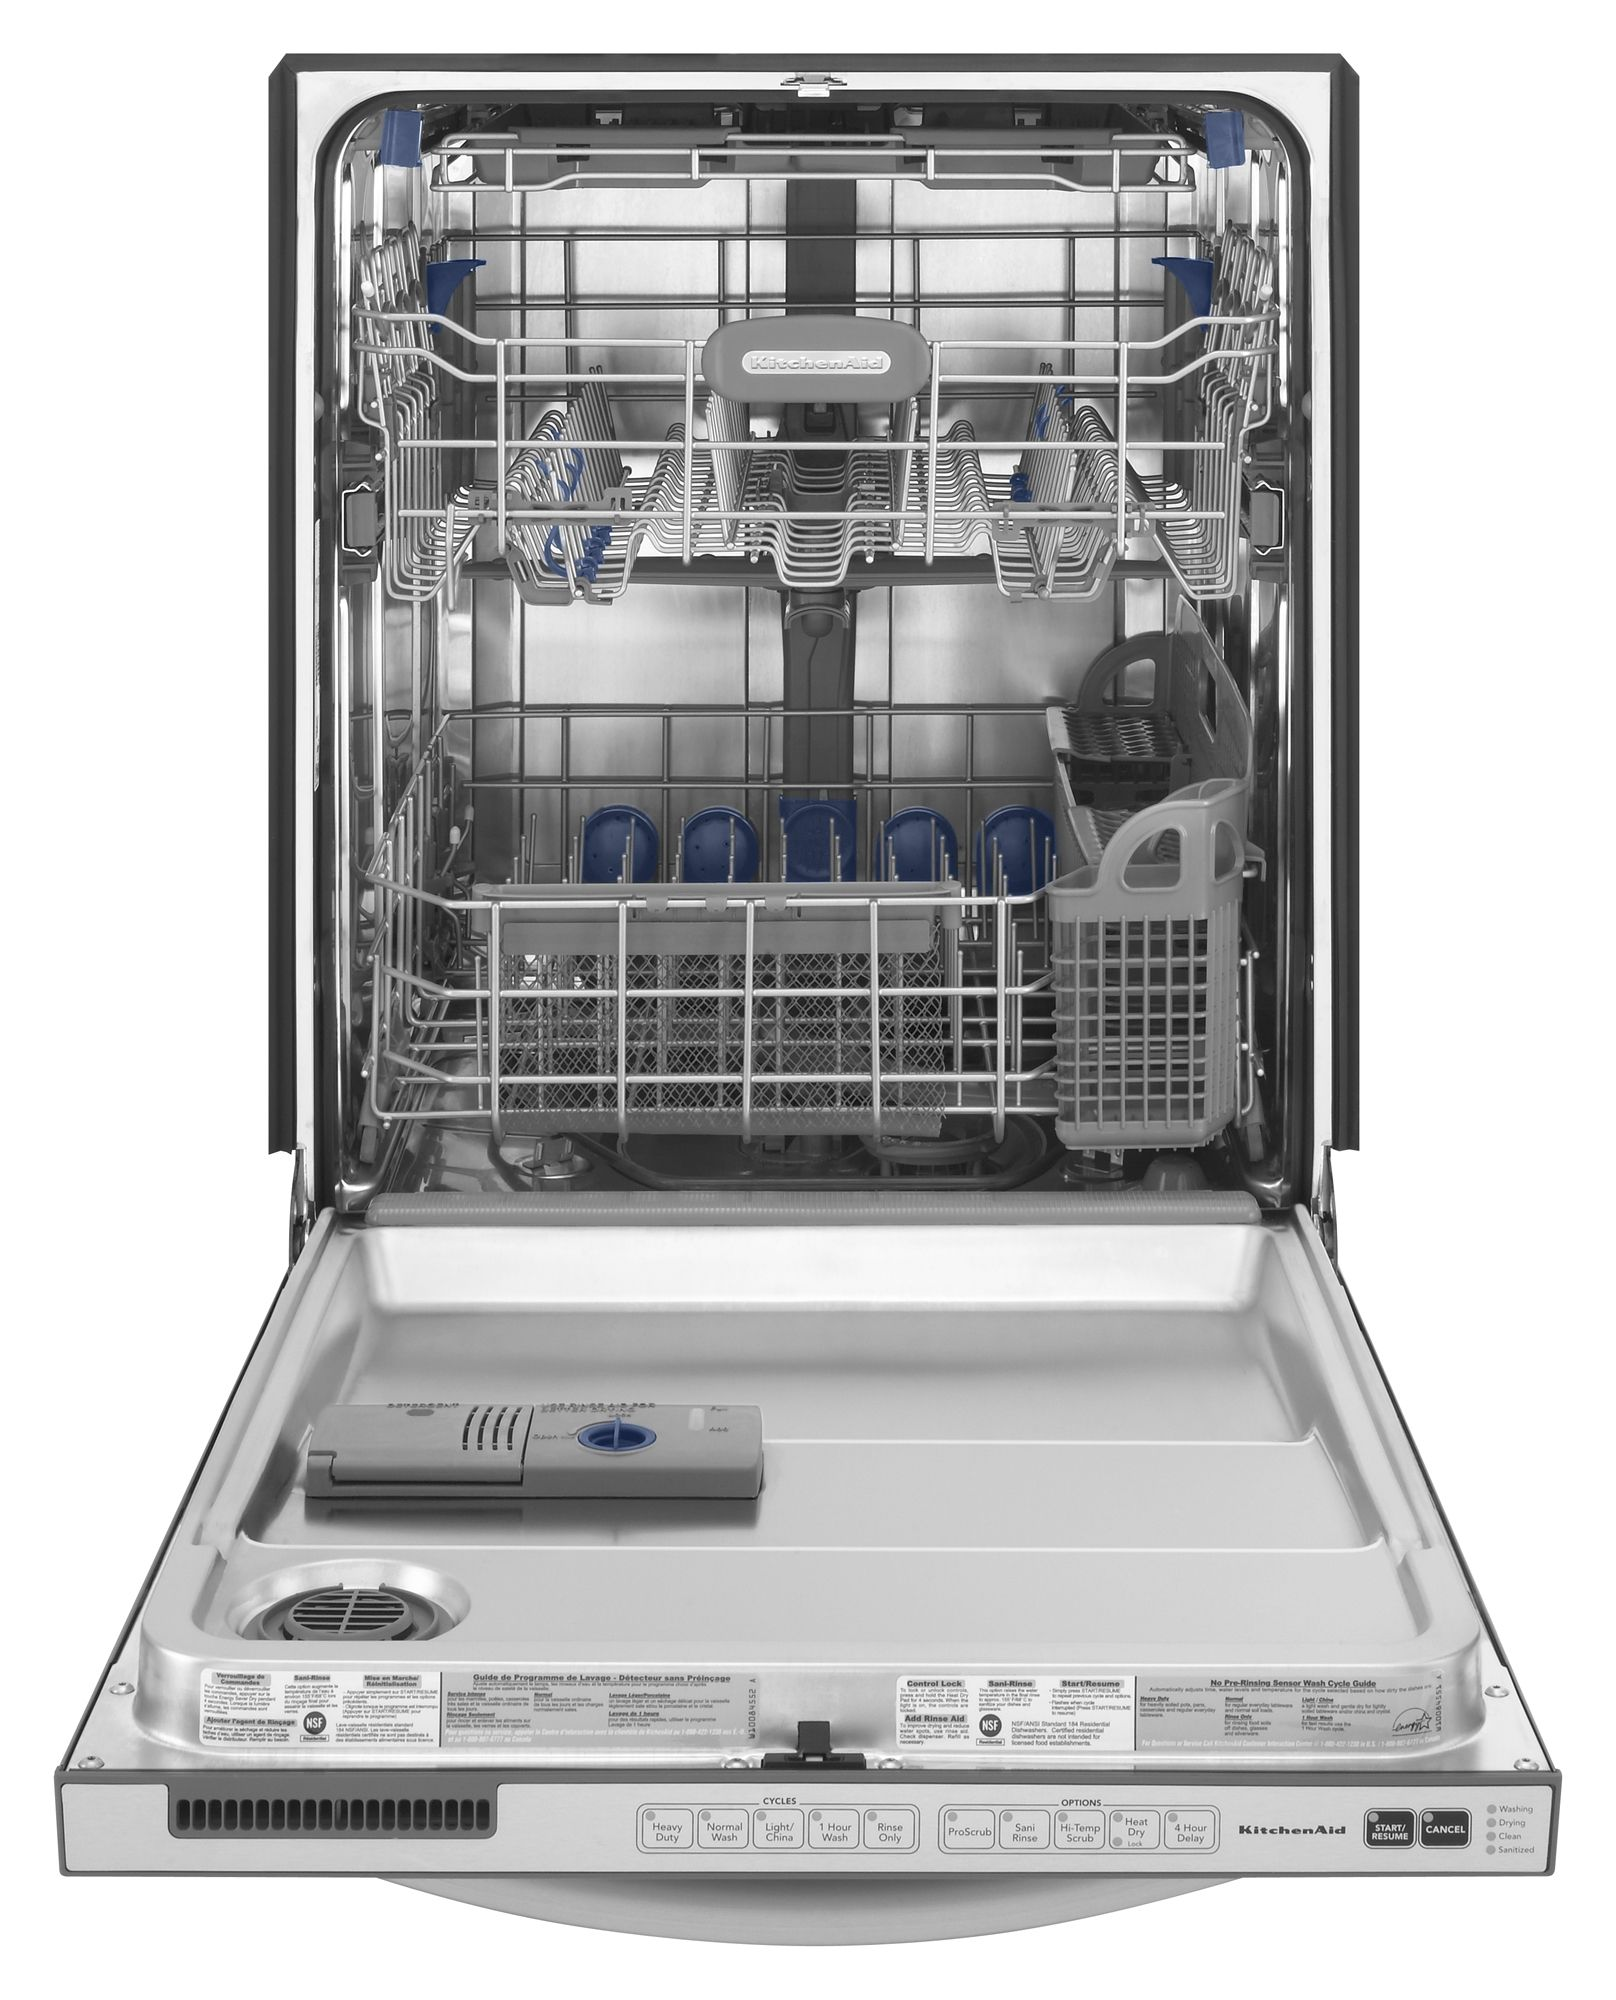 KitchenAid Superba® EQ Series 24 in. Built-In Dishwasher with Pro Scrub® (KUDE70FV)